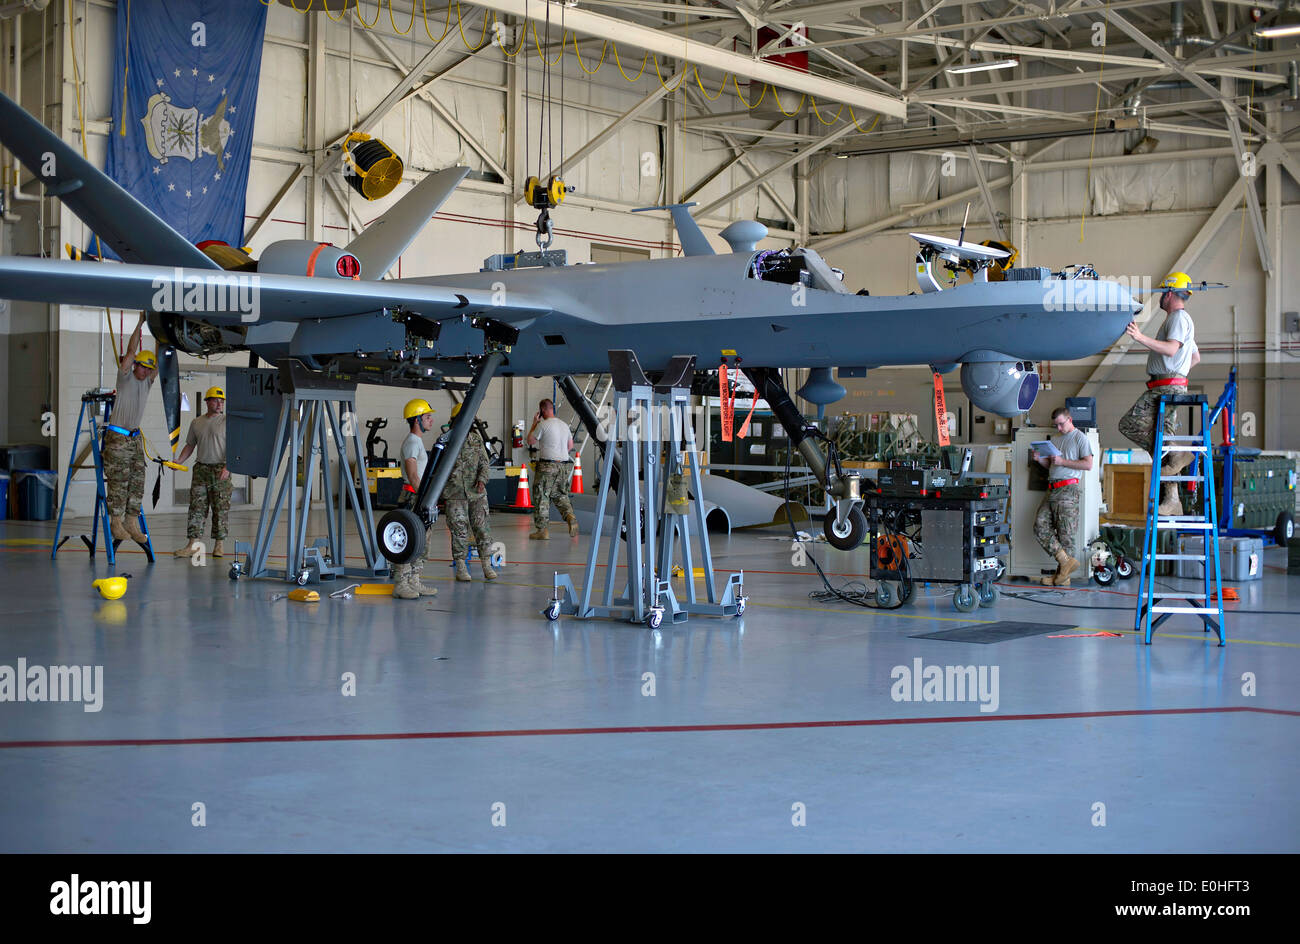 US Air Force airman from Canon Air Force Base assemble an MQ-9 Reaper unmanned aerial vehicle April 23, 2014 at Hurlburt Field, Florida. - Stock Image